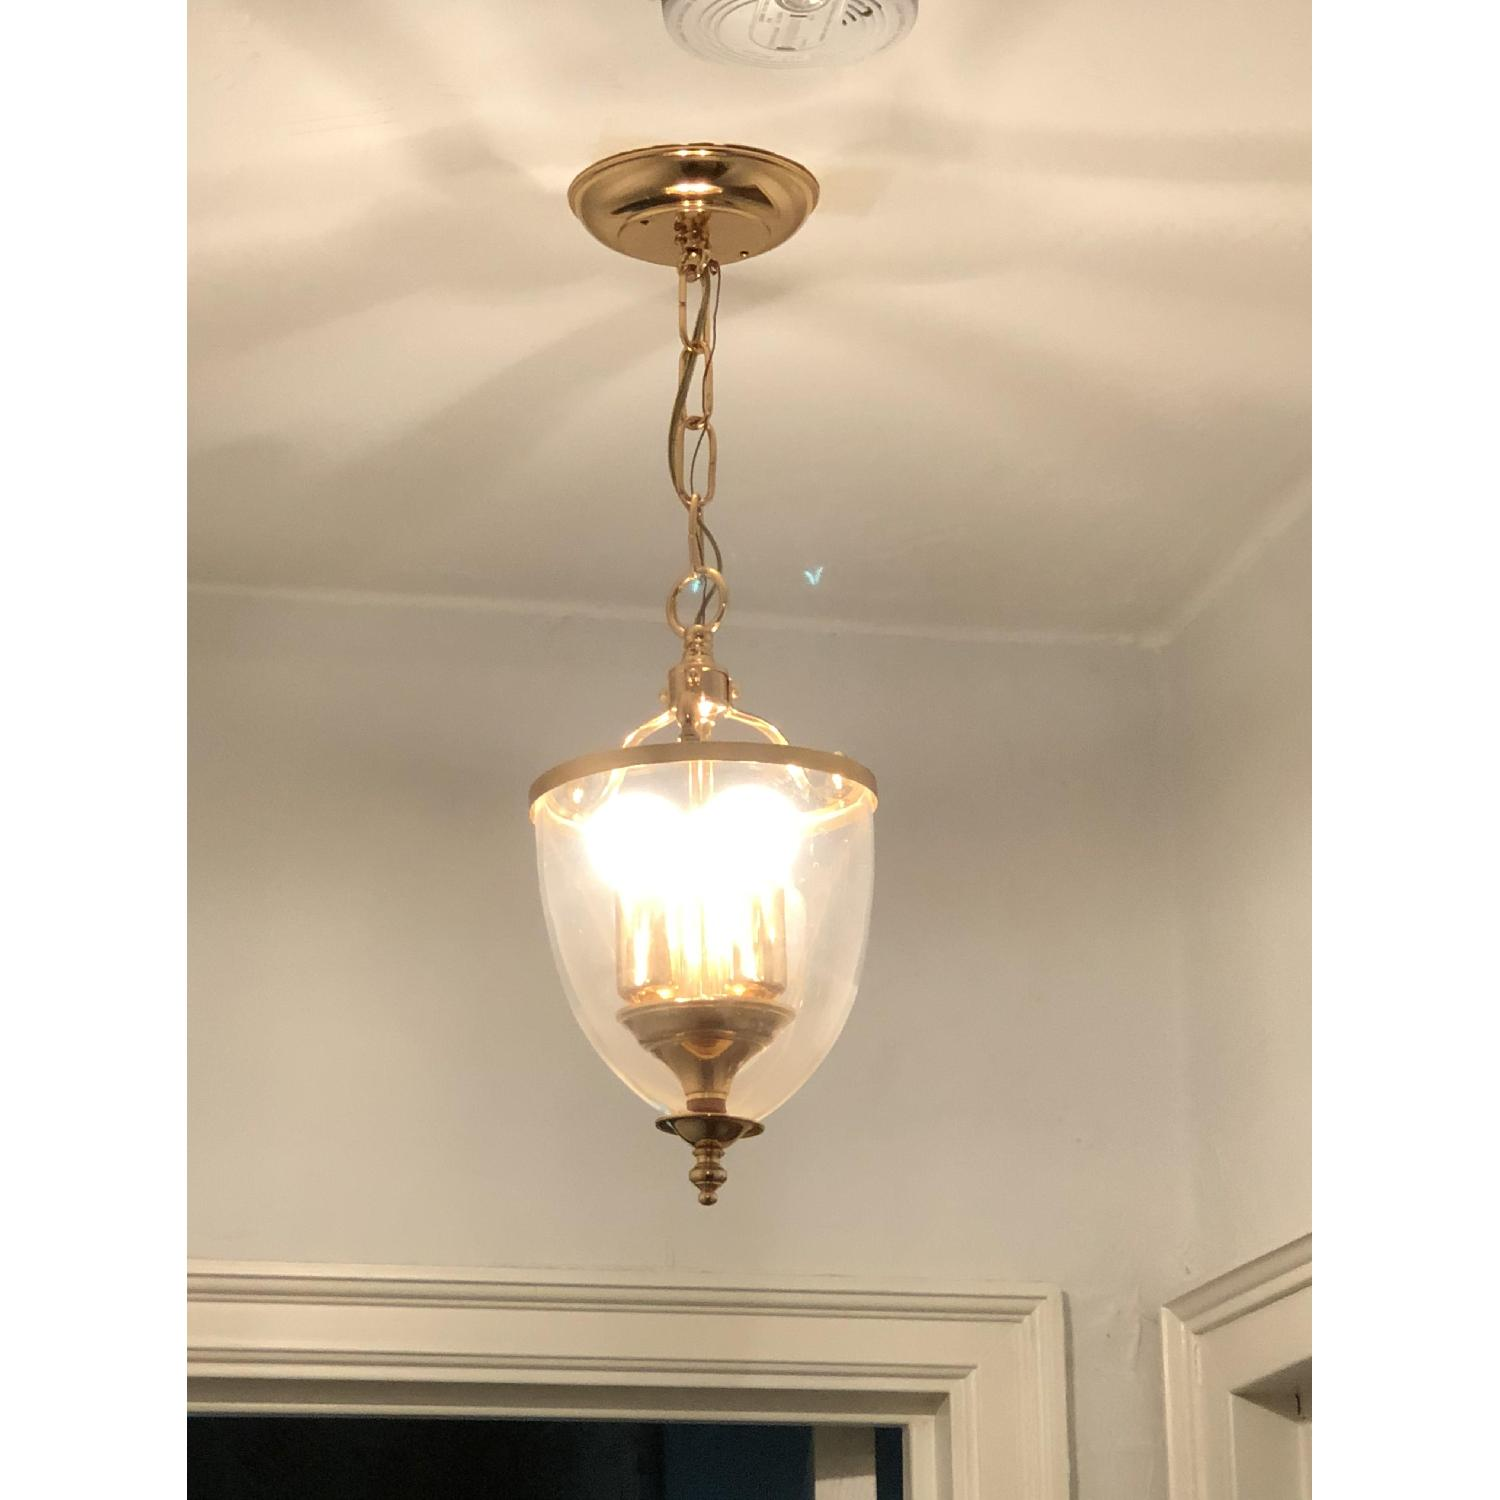 3-Light Glass Pendant Light Fixture-1